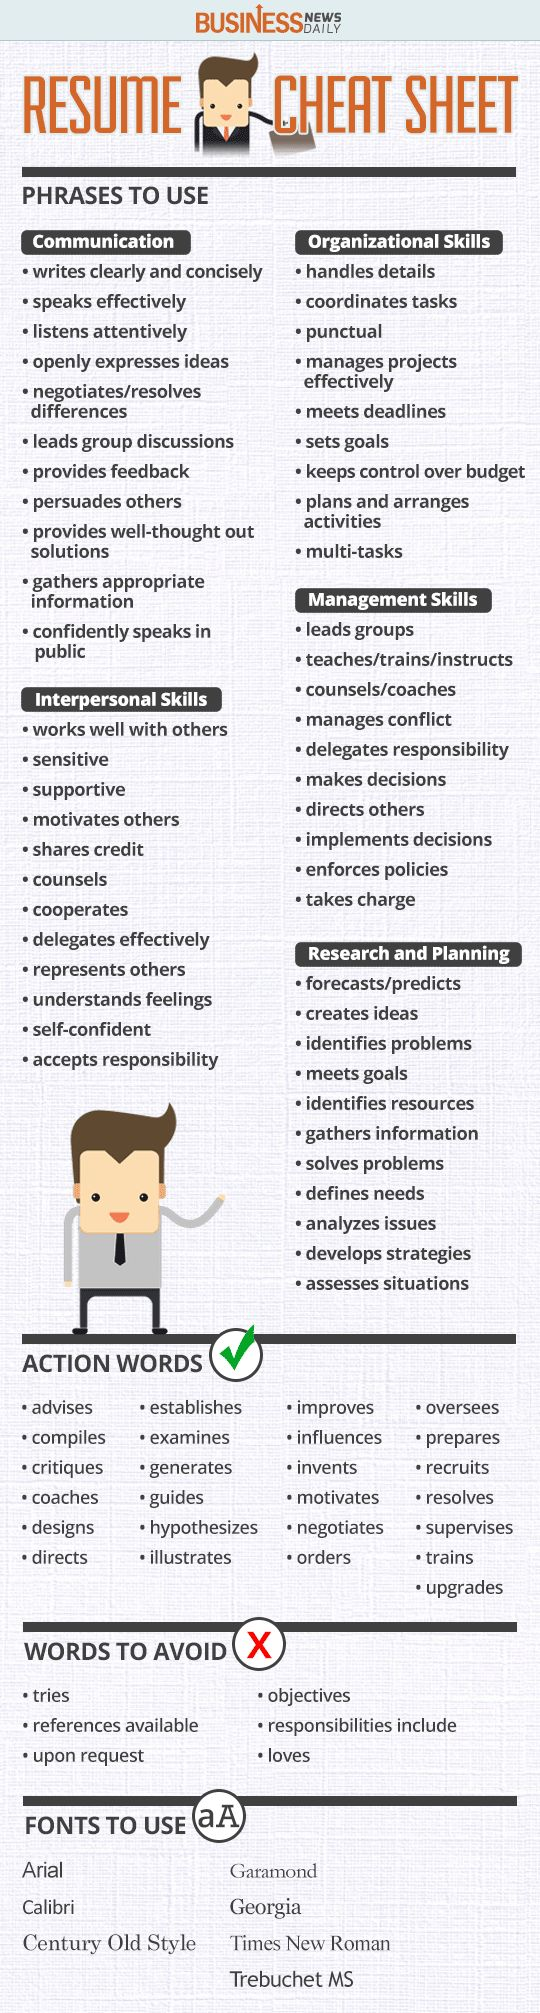 Opposenewapstandardsus  Remarkable  Ideas About Resume On Pinterest  Cv Format Resume Cv And  With Fair Resume Cheat Sheet Infographic Andrews Almost Done With A Complete Unit On Employment Which With Captivating Resume Tips For College Students Also Skill Set Resume In Addition Theatrical Resume And Visual Merchandiser Resume As Well As Front Desk Agent Resume Additionally Resume Examples For Teens From Pinterestcom With Opposenewapstandardsus  Fair  Ideas About Resume On Pinterest  Cv Format Resume Cv And  With Captivating Resume Cheat Sheet Infographic Andrews Almost Done With A Complete Unit On Employment Which And Remarkable Resume Tips For College Students Also Skill Set Resume In Addition Theatrical Resume From Pinterestcom